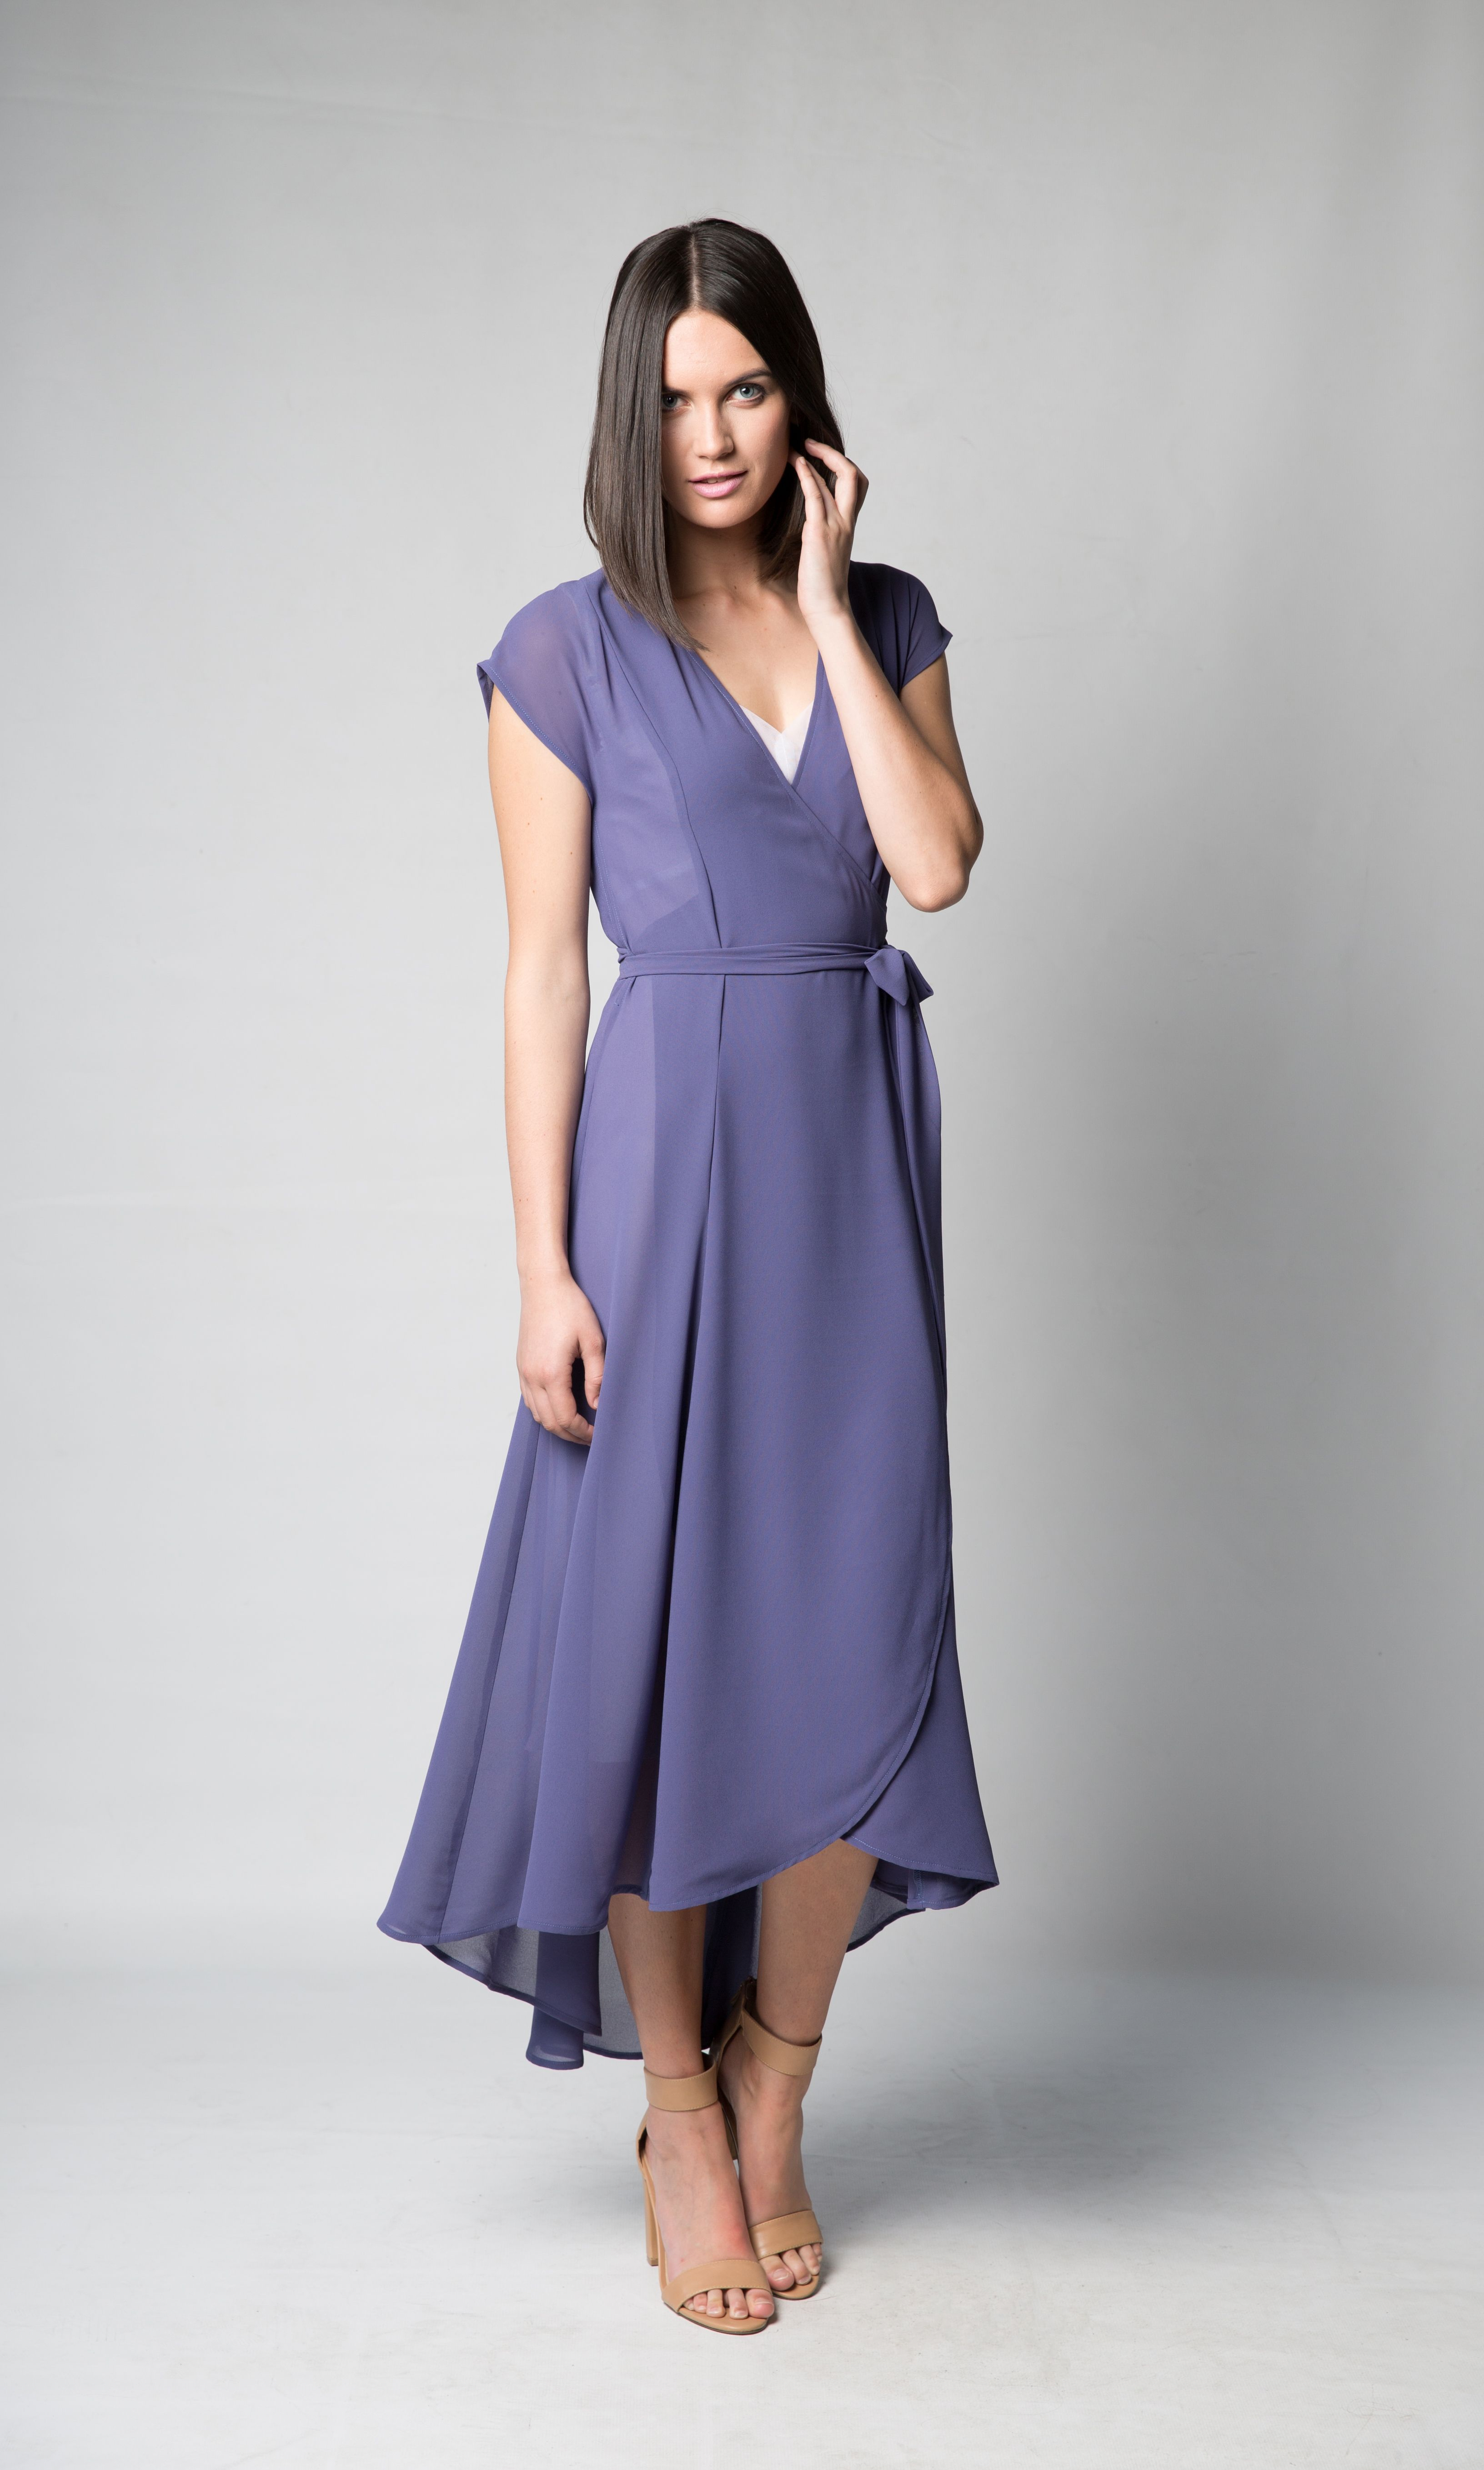 Purple Summer Dresses to Wear to a Wedding